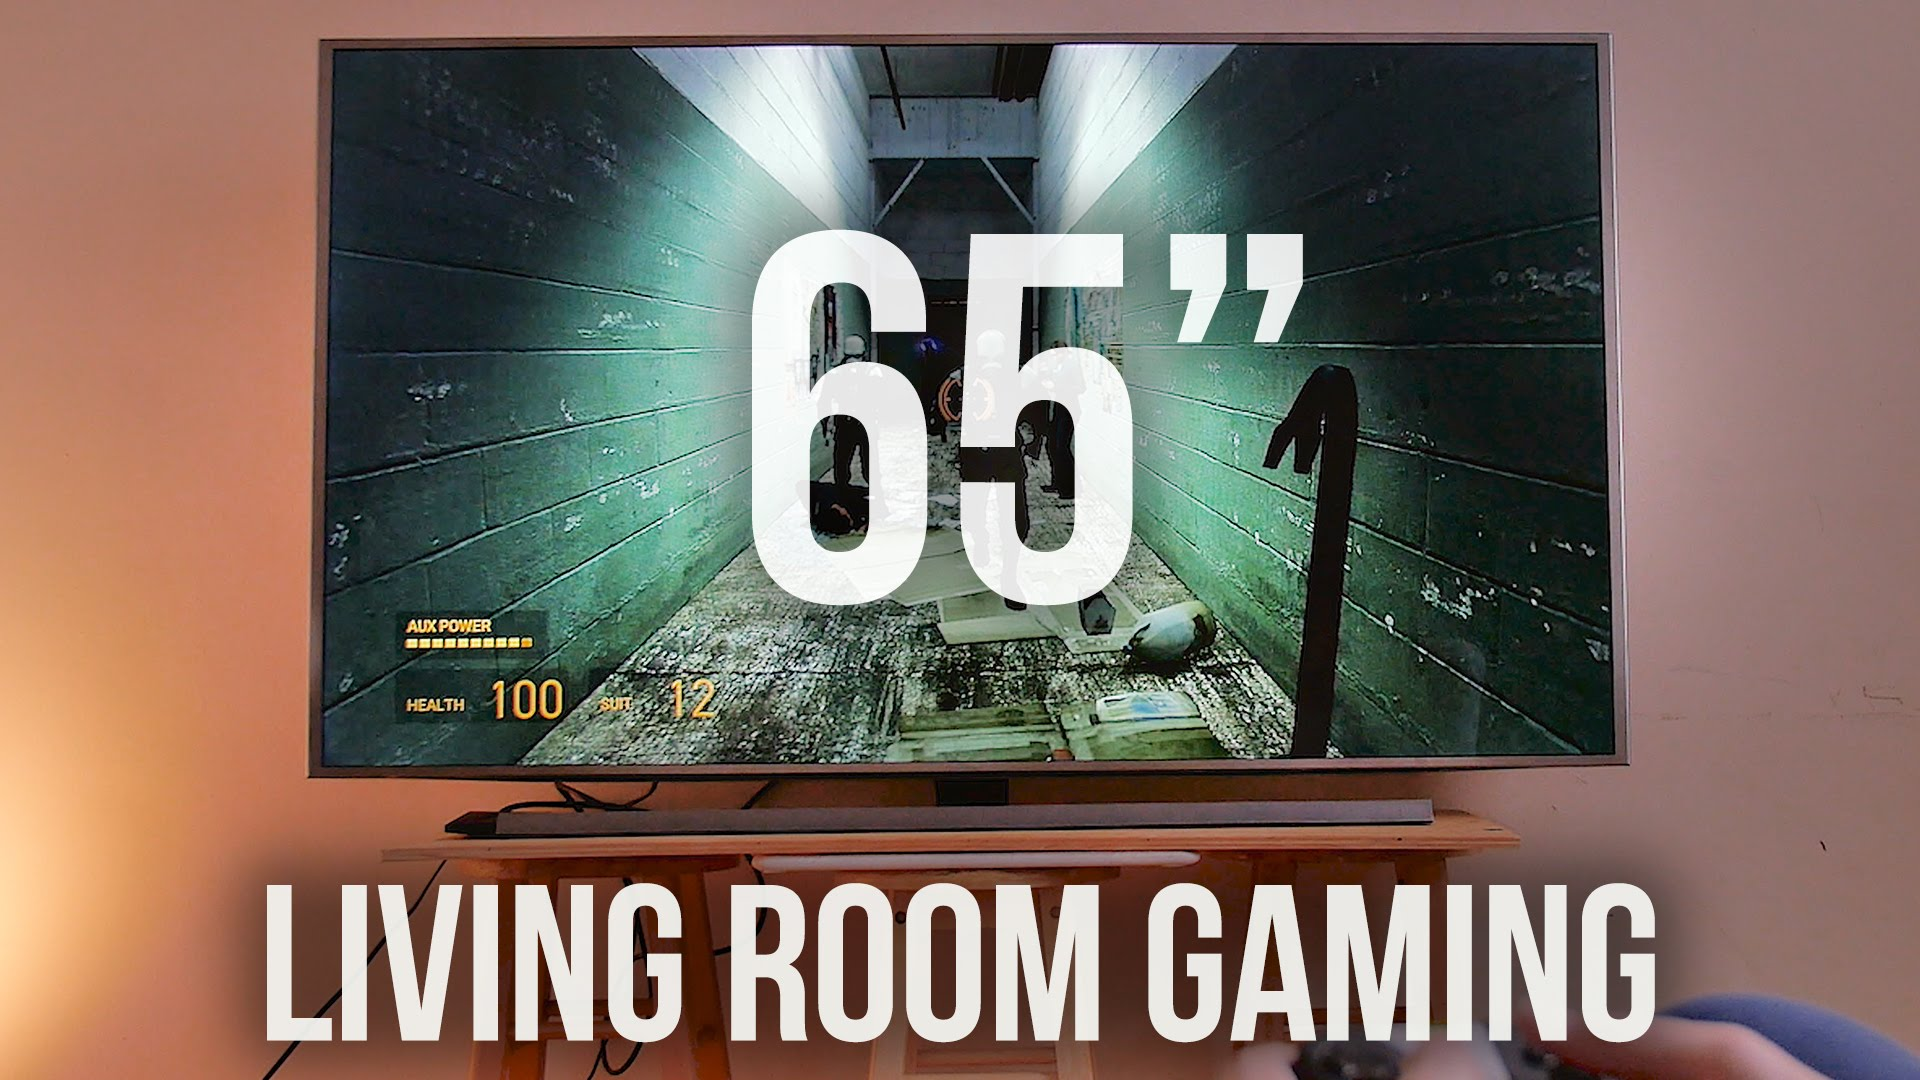 Tv 65 Inch Insane Gaming On 65 Inch 4k Tv Vgfaq